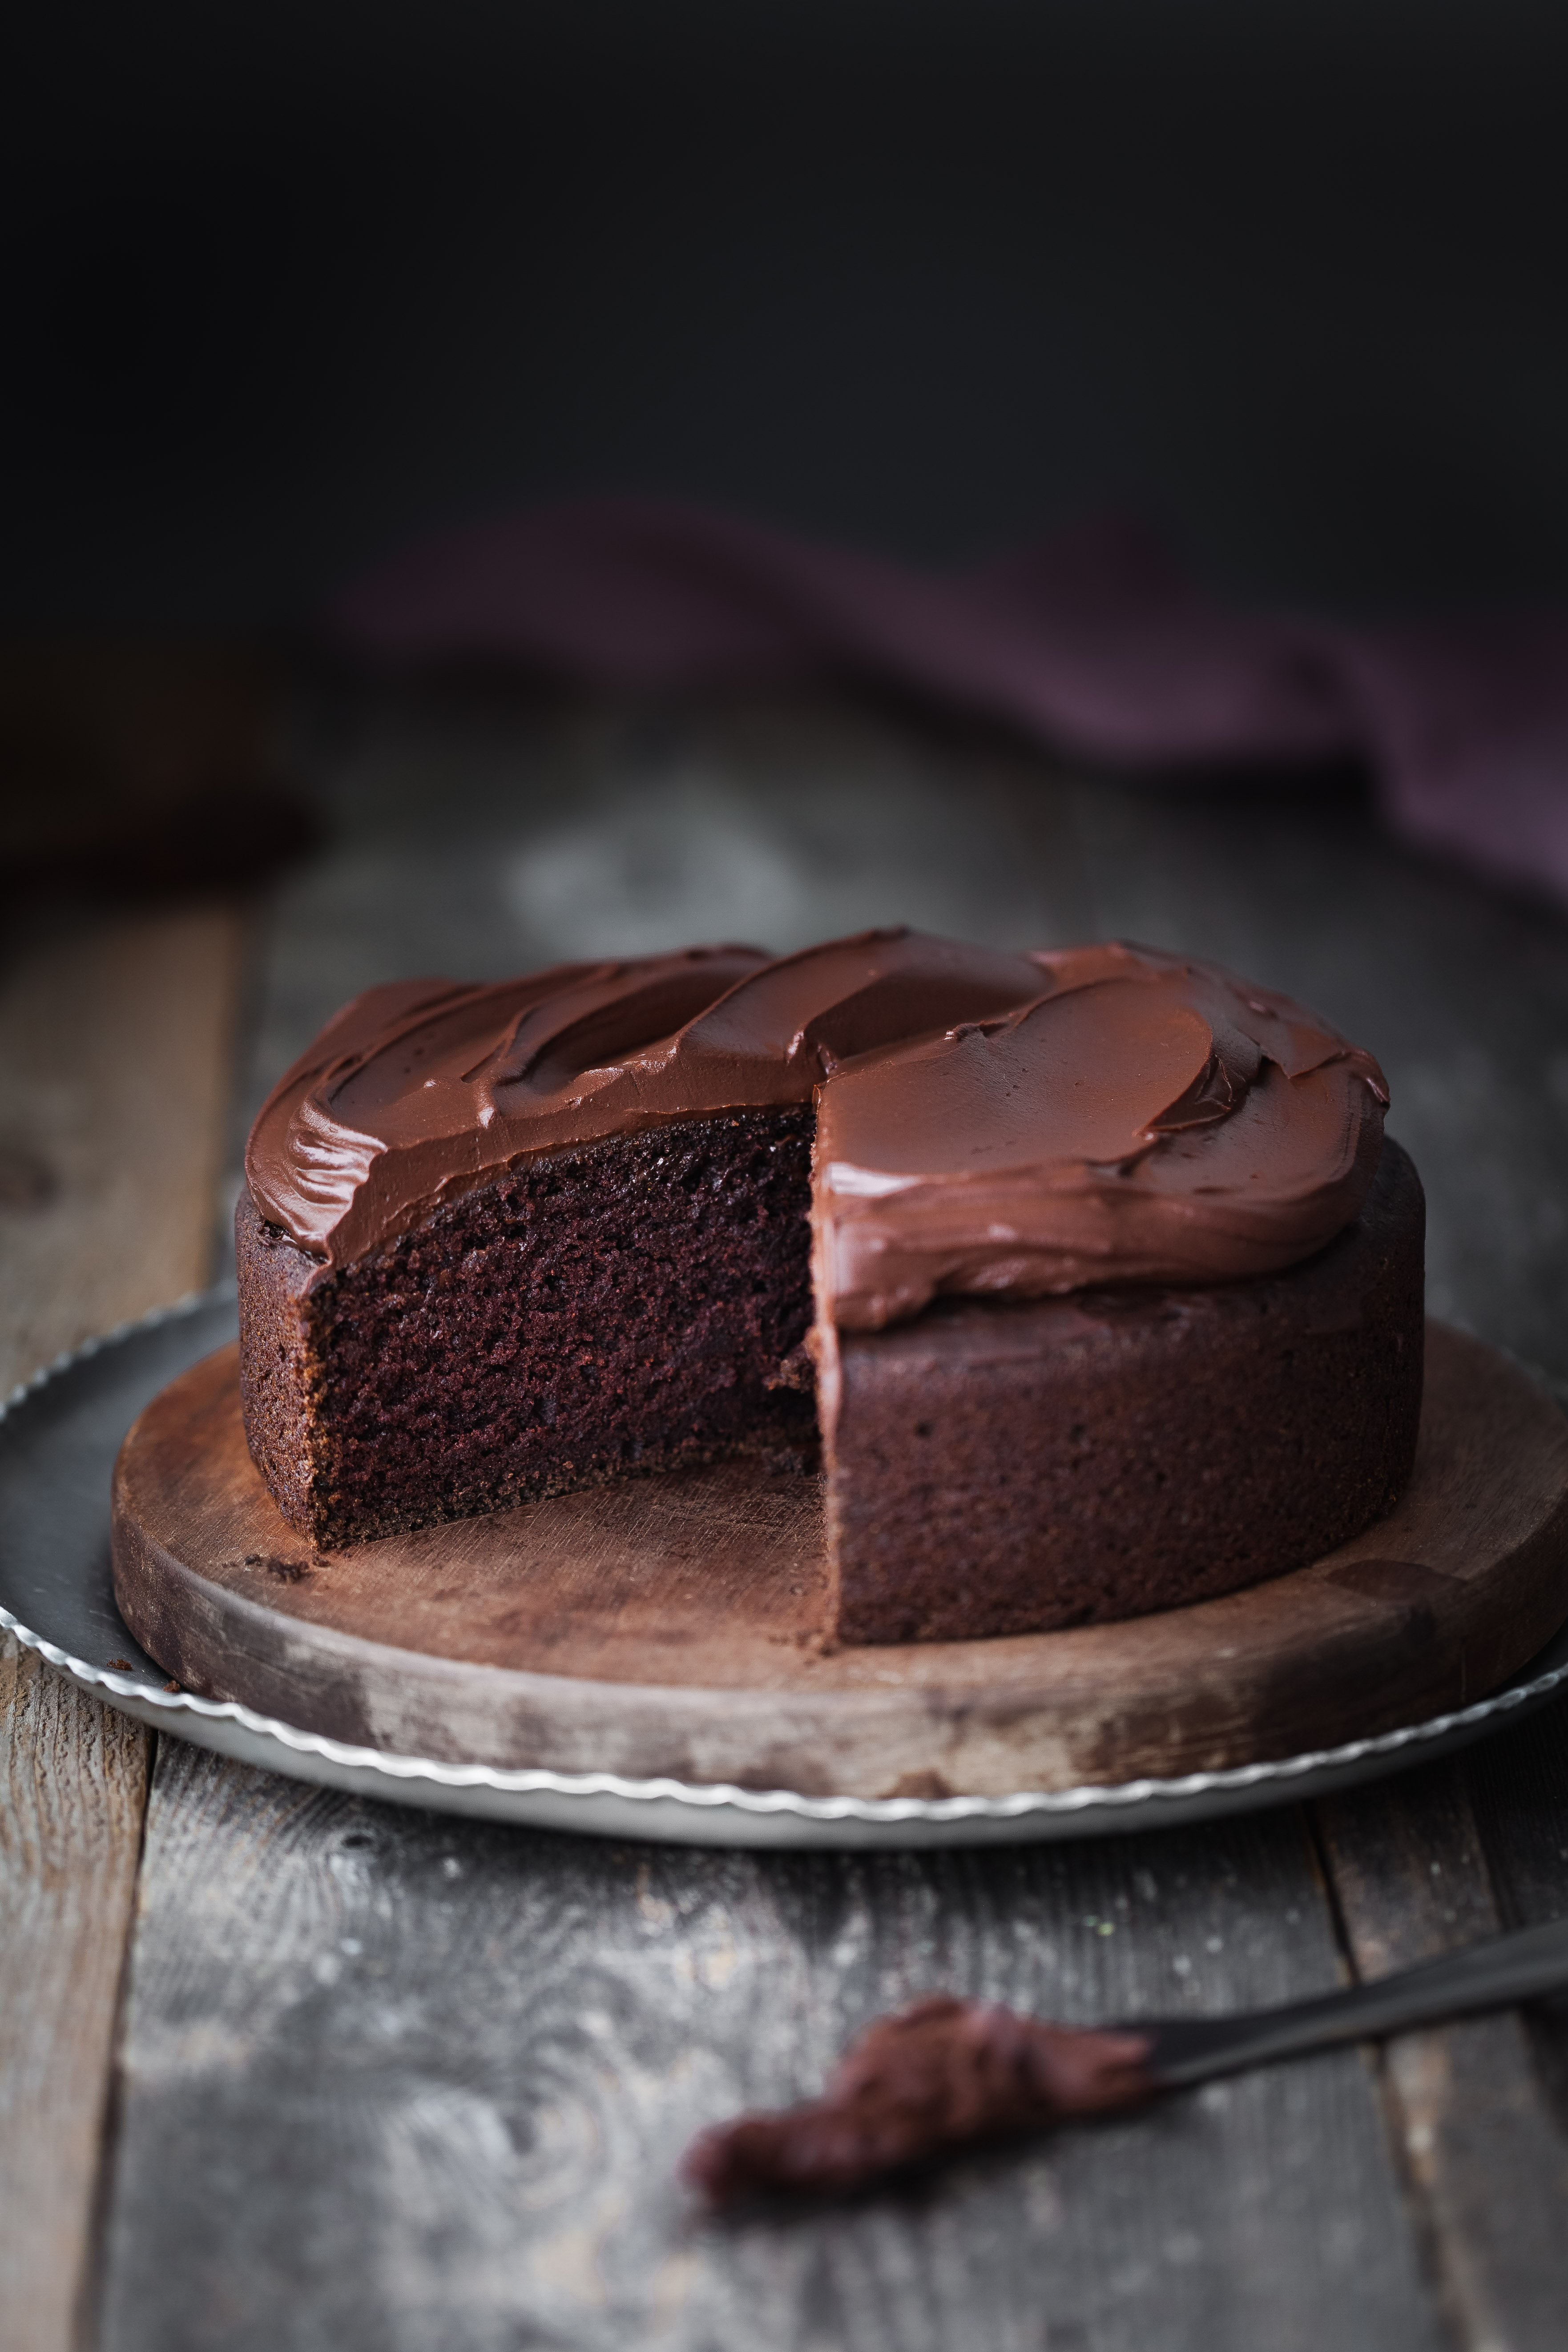 a hea don image of a Double Chocolate Beetroot Cake with a slice removed and a knife in the foreground.